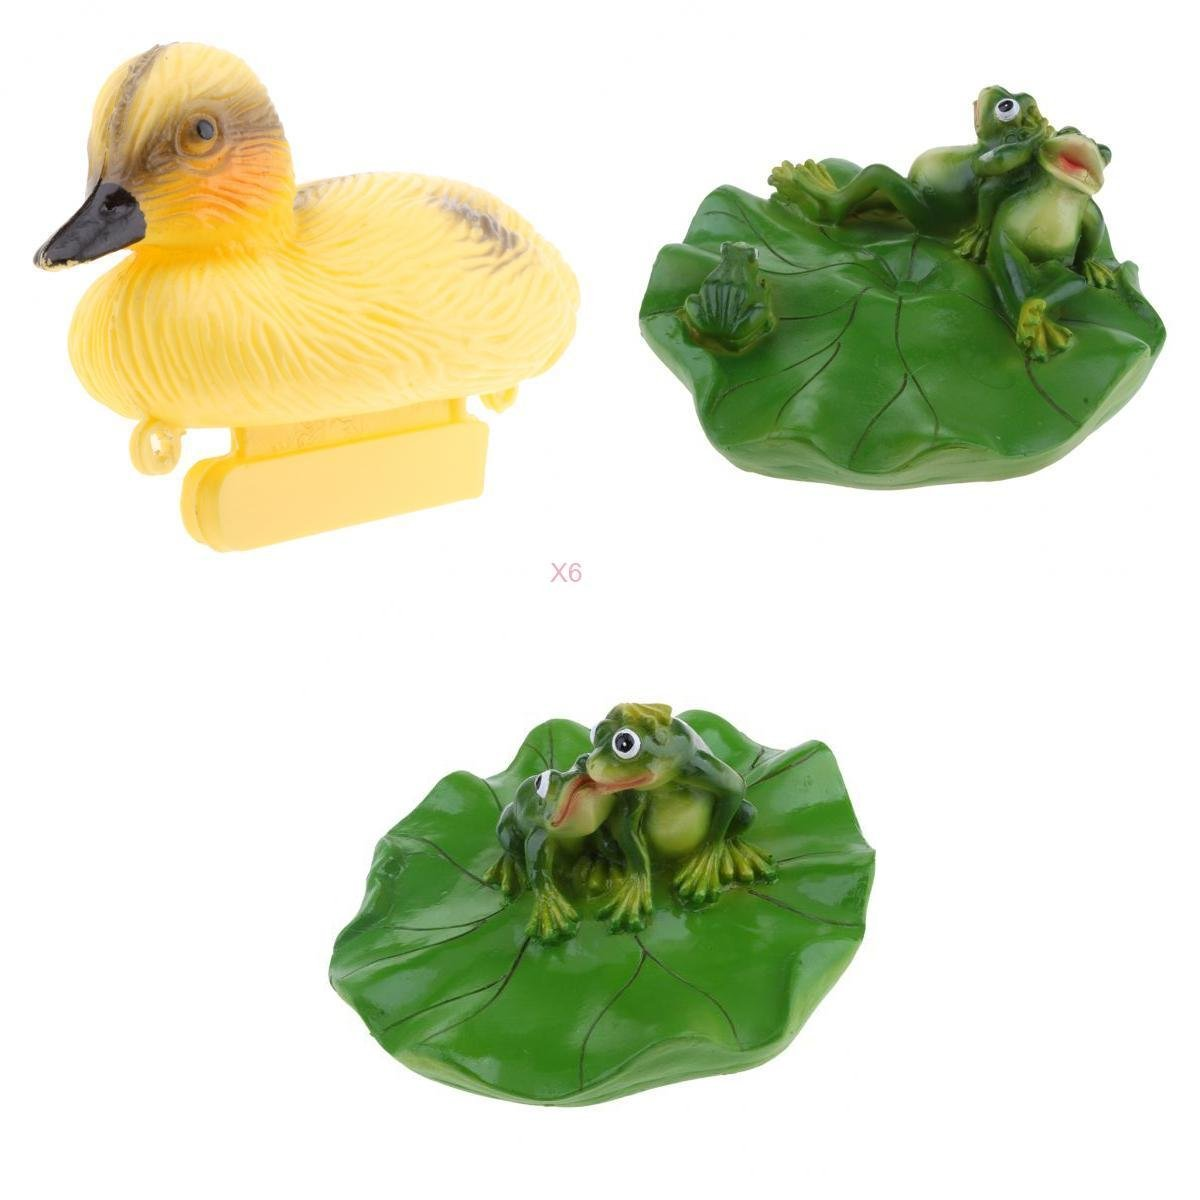 D DOLITY 8x Creative Animal Ornament Water Floating Duck Frog on Lotus Leaf Figurine Resin Green Plants Kid Toys Fountain Decoration Garden Decor